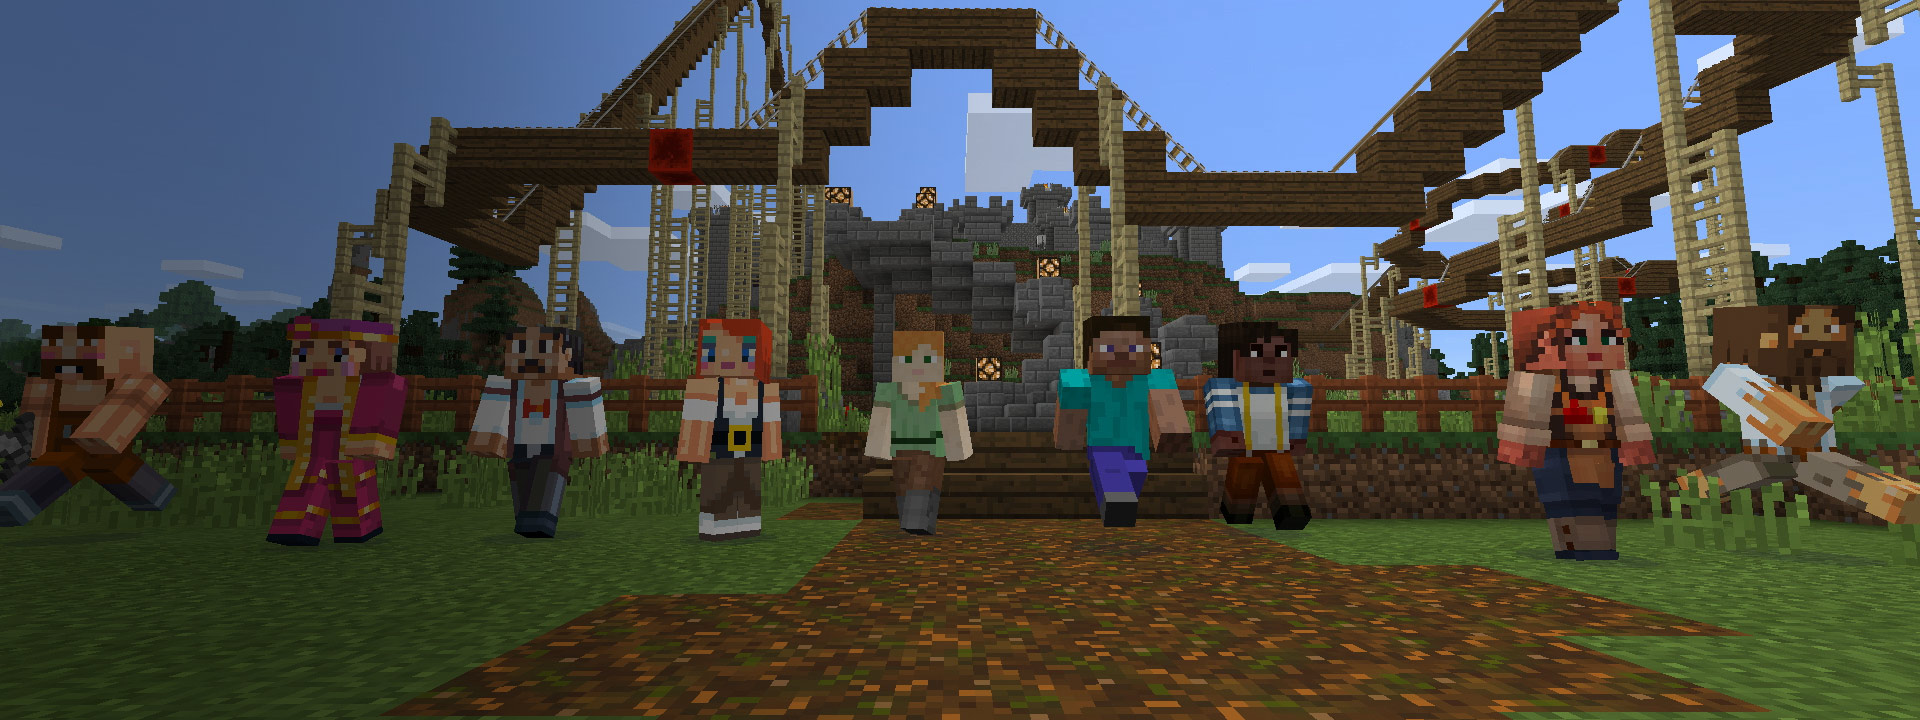 Minecraft Players joining to build